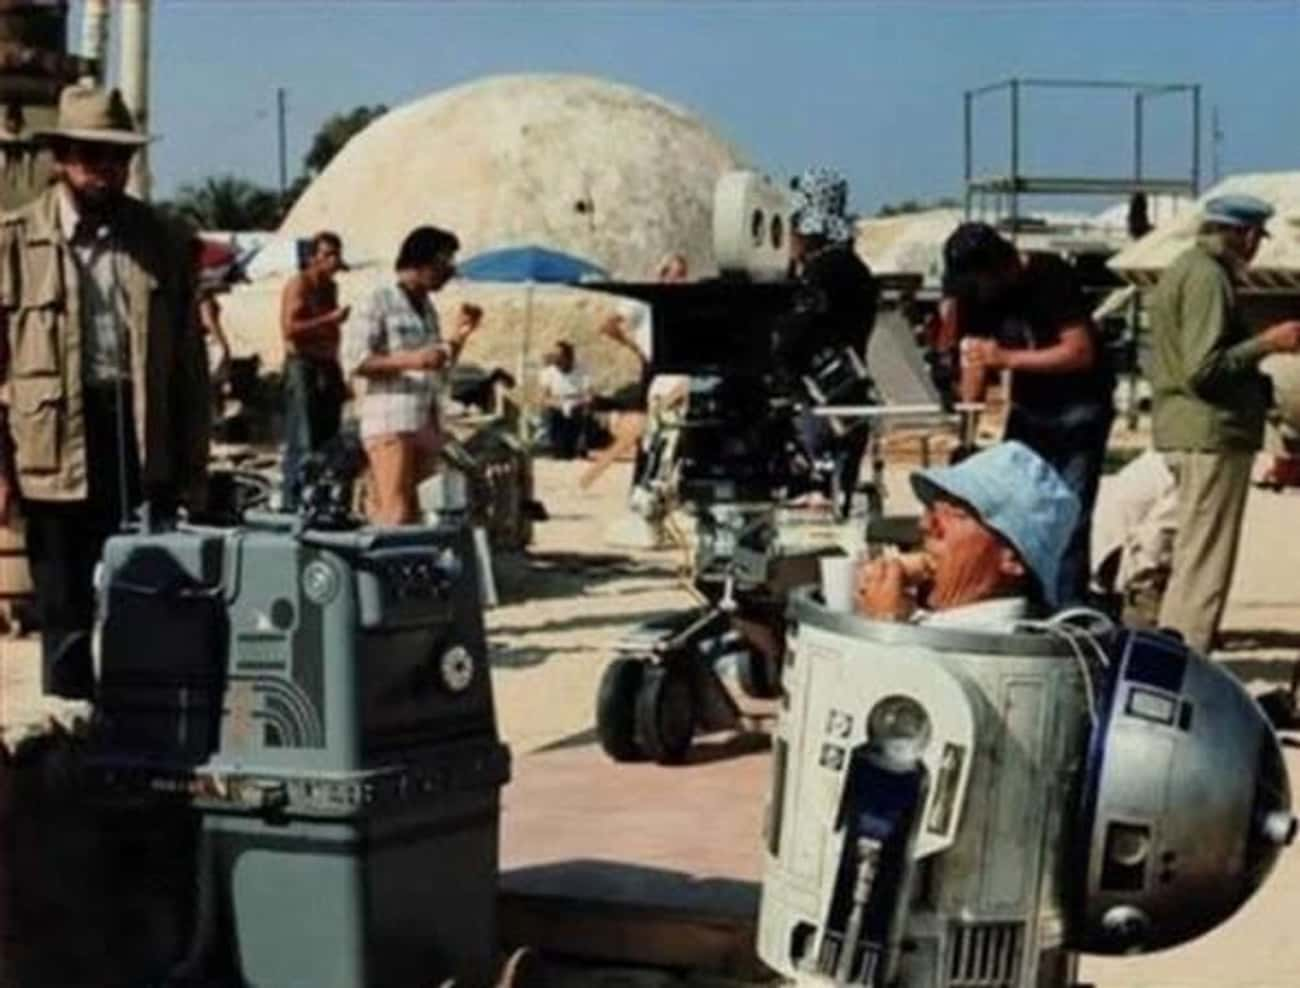 R2D2 Eating a Sandwich is listed (or ranked) 3 on the list 95+ Amazing Behind the Scenes Photos from Iconic Movies